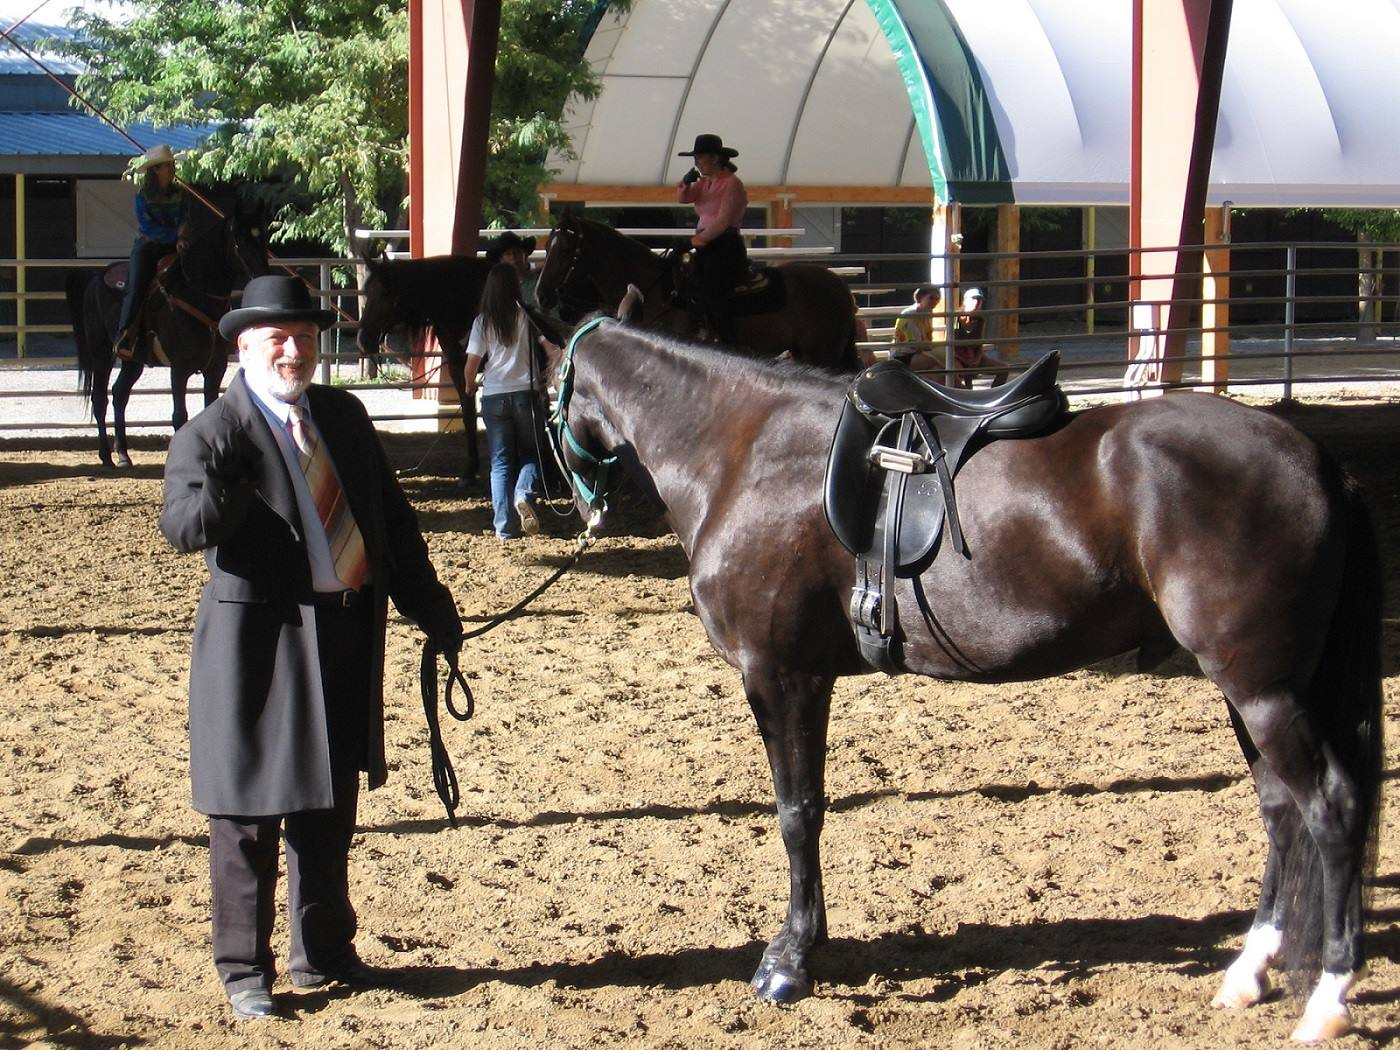 Rick Evans in a 2013 photo posted on his horse riding and training website and Facebook page.